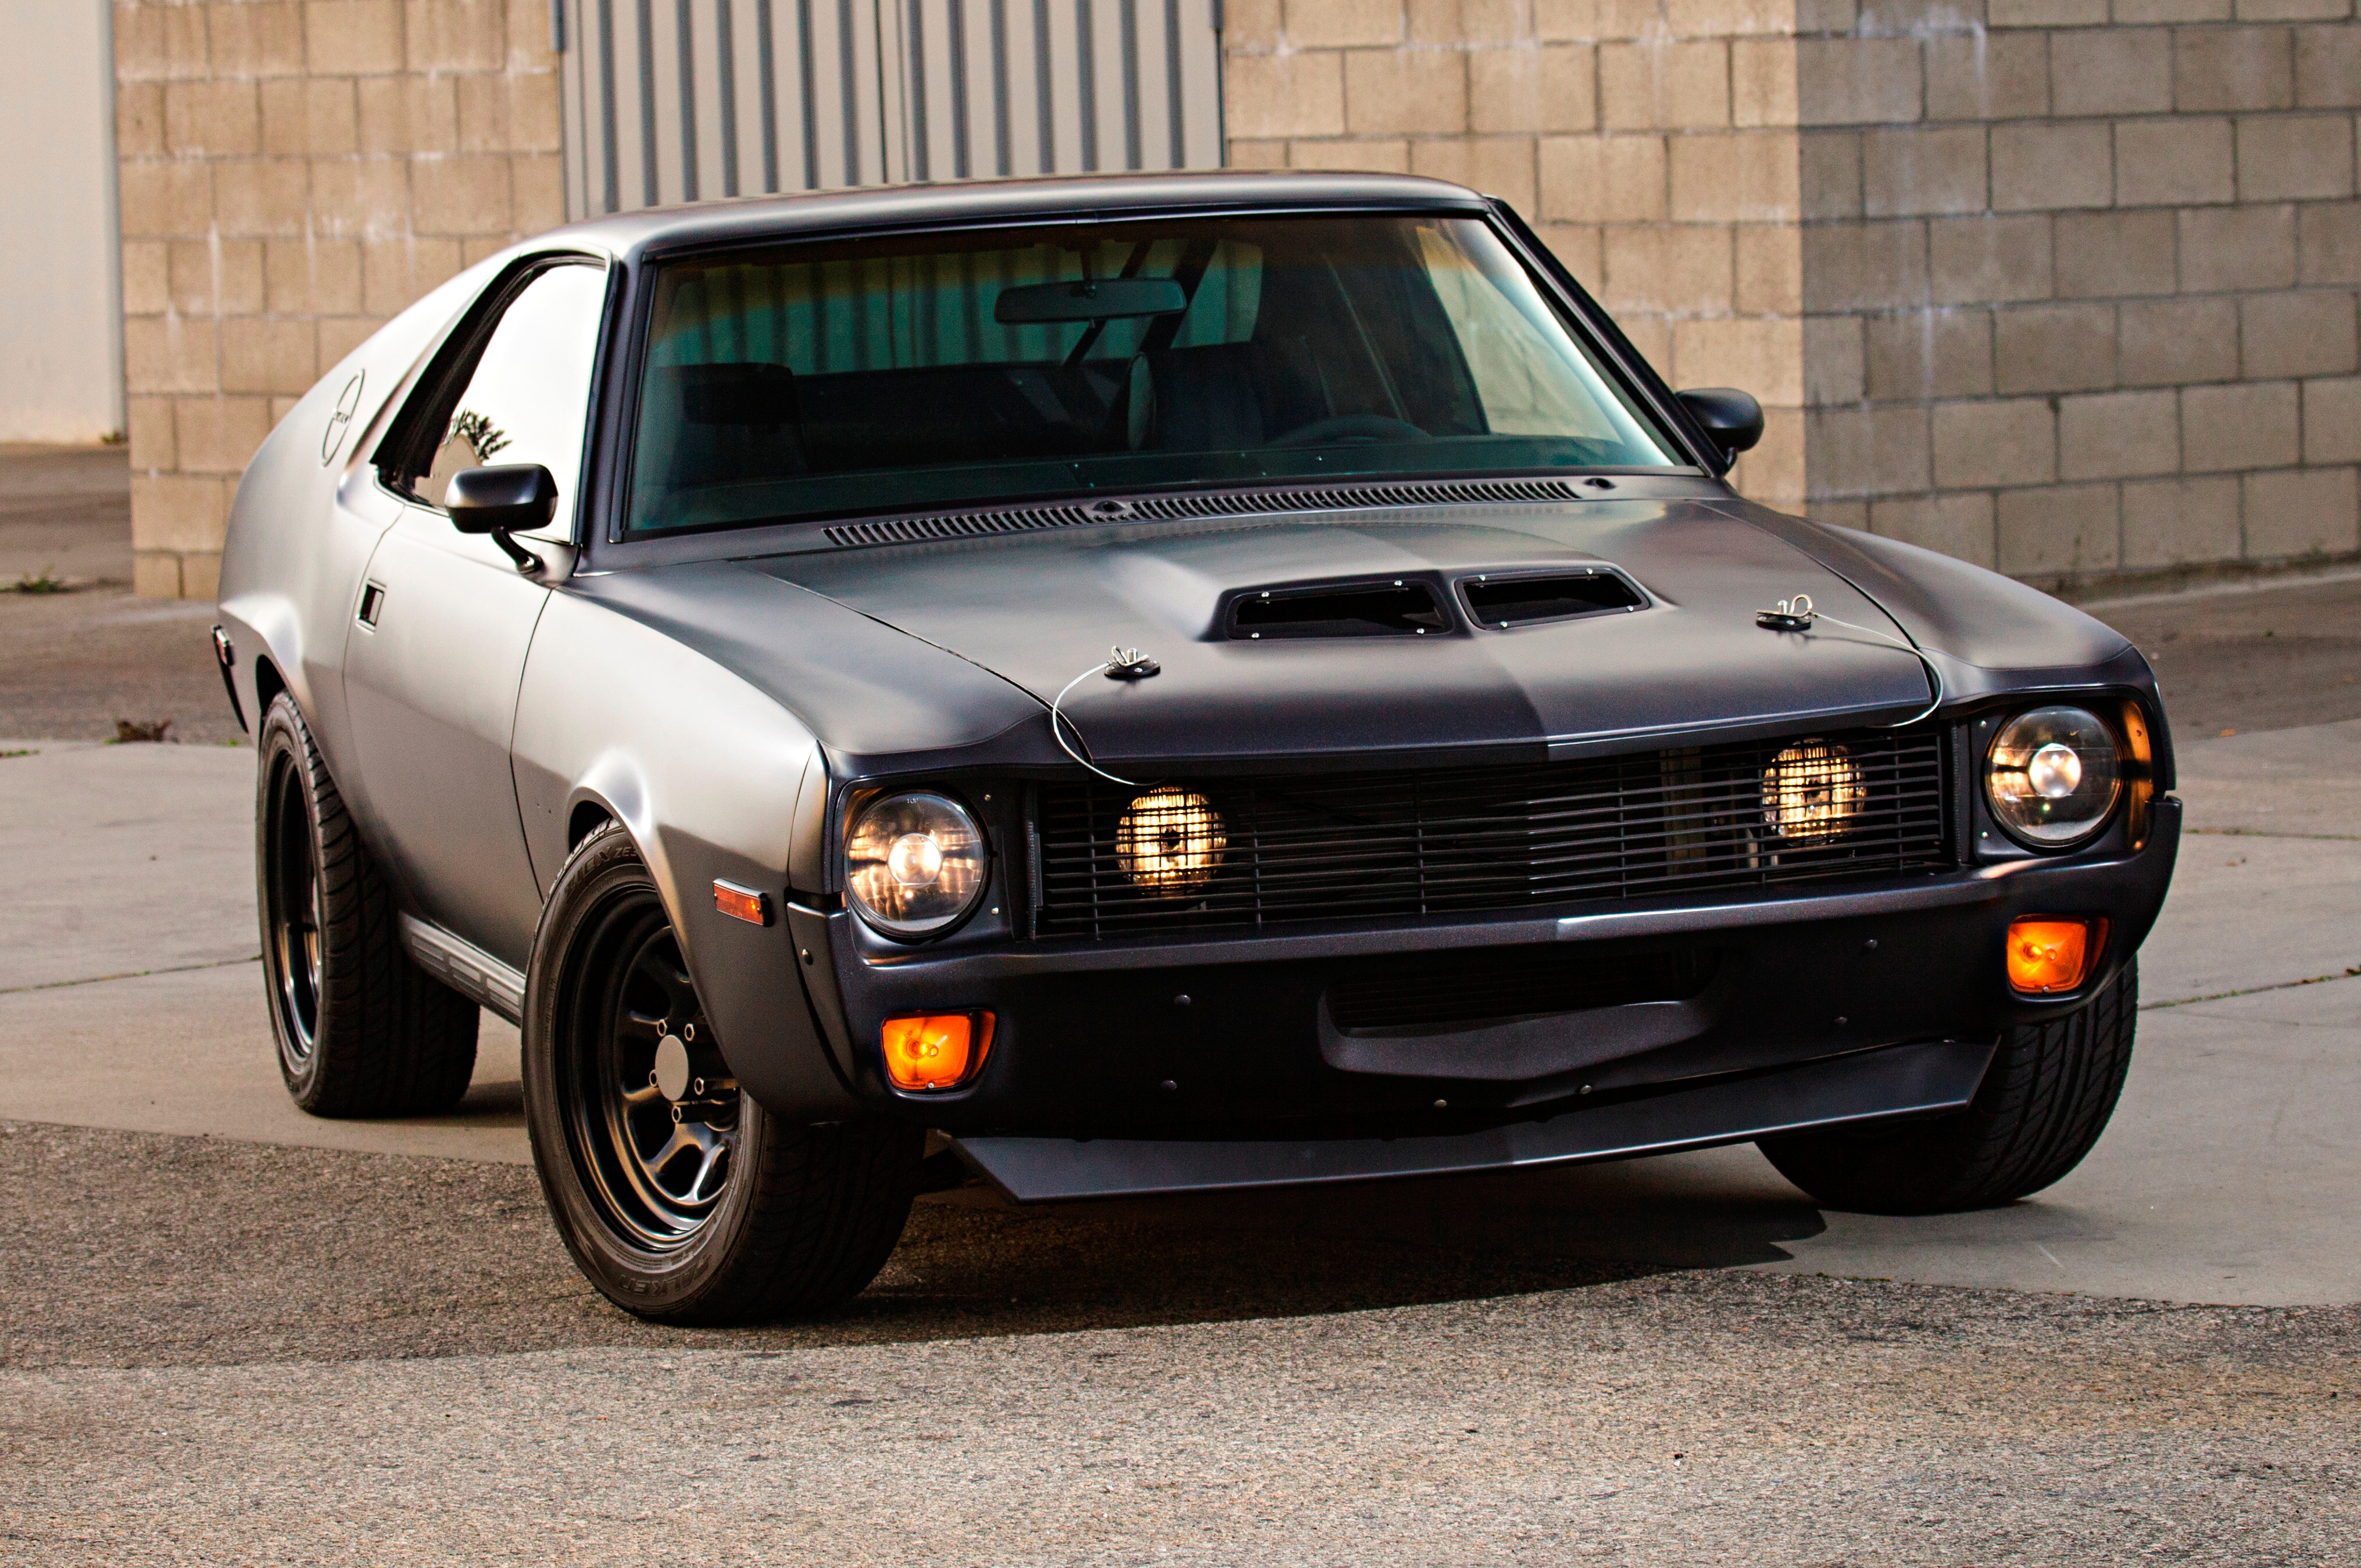 The '70 AMX may be his favorite year, but Allen never liked the flush-mounted grille. Instead, he made his own from aluminum and recessed it back a bit. Those projector lights were some cheapies he found at a speed shop, and the fogs behind the grille are tied in with the bright beams on the headlights.